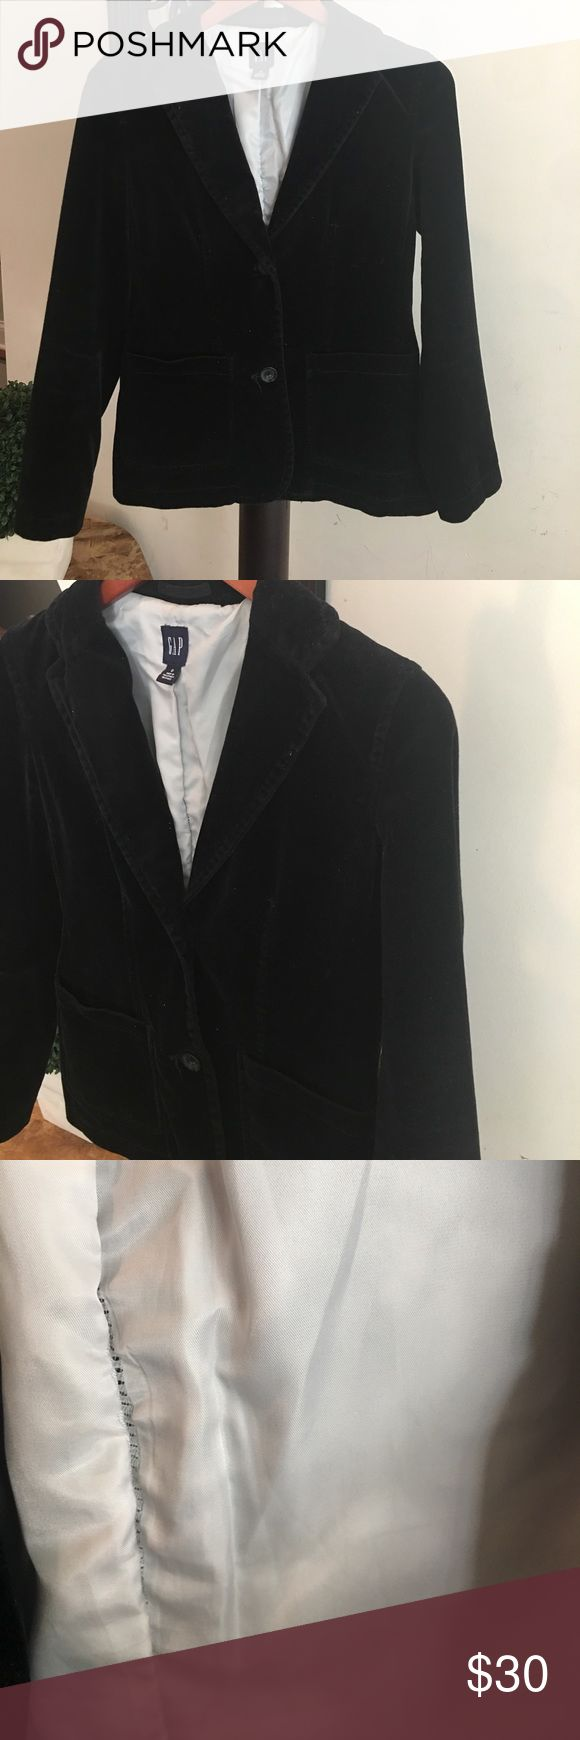 Black velvet blazer GAP size 0 Awesome black velvet blazer - size 0 - unfortunately not a size 0 anymore and no planning to be anytime soon - two buttons on the front - the lining is a little bit stretchy on the back (check the pic) - it is in great condition, but you have to be constantly cleaning it - like any dark velvet fabric - there are no tears GAP Jackets & Coats Blazers